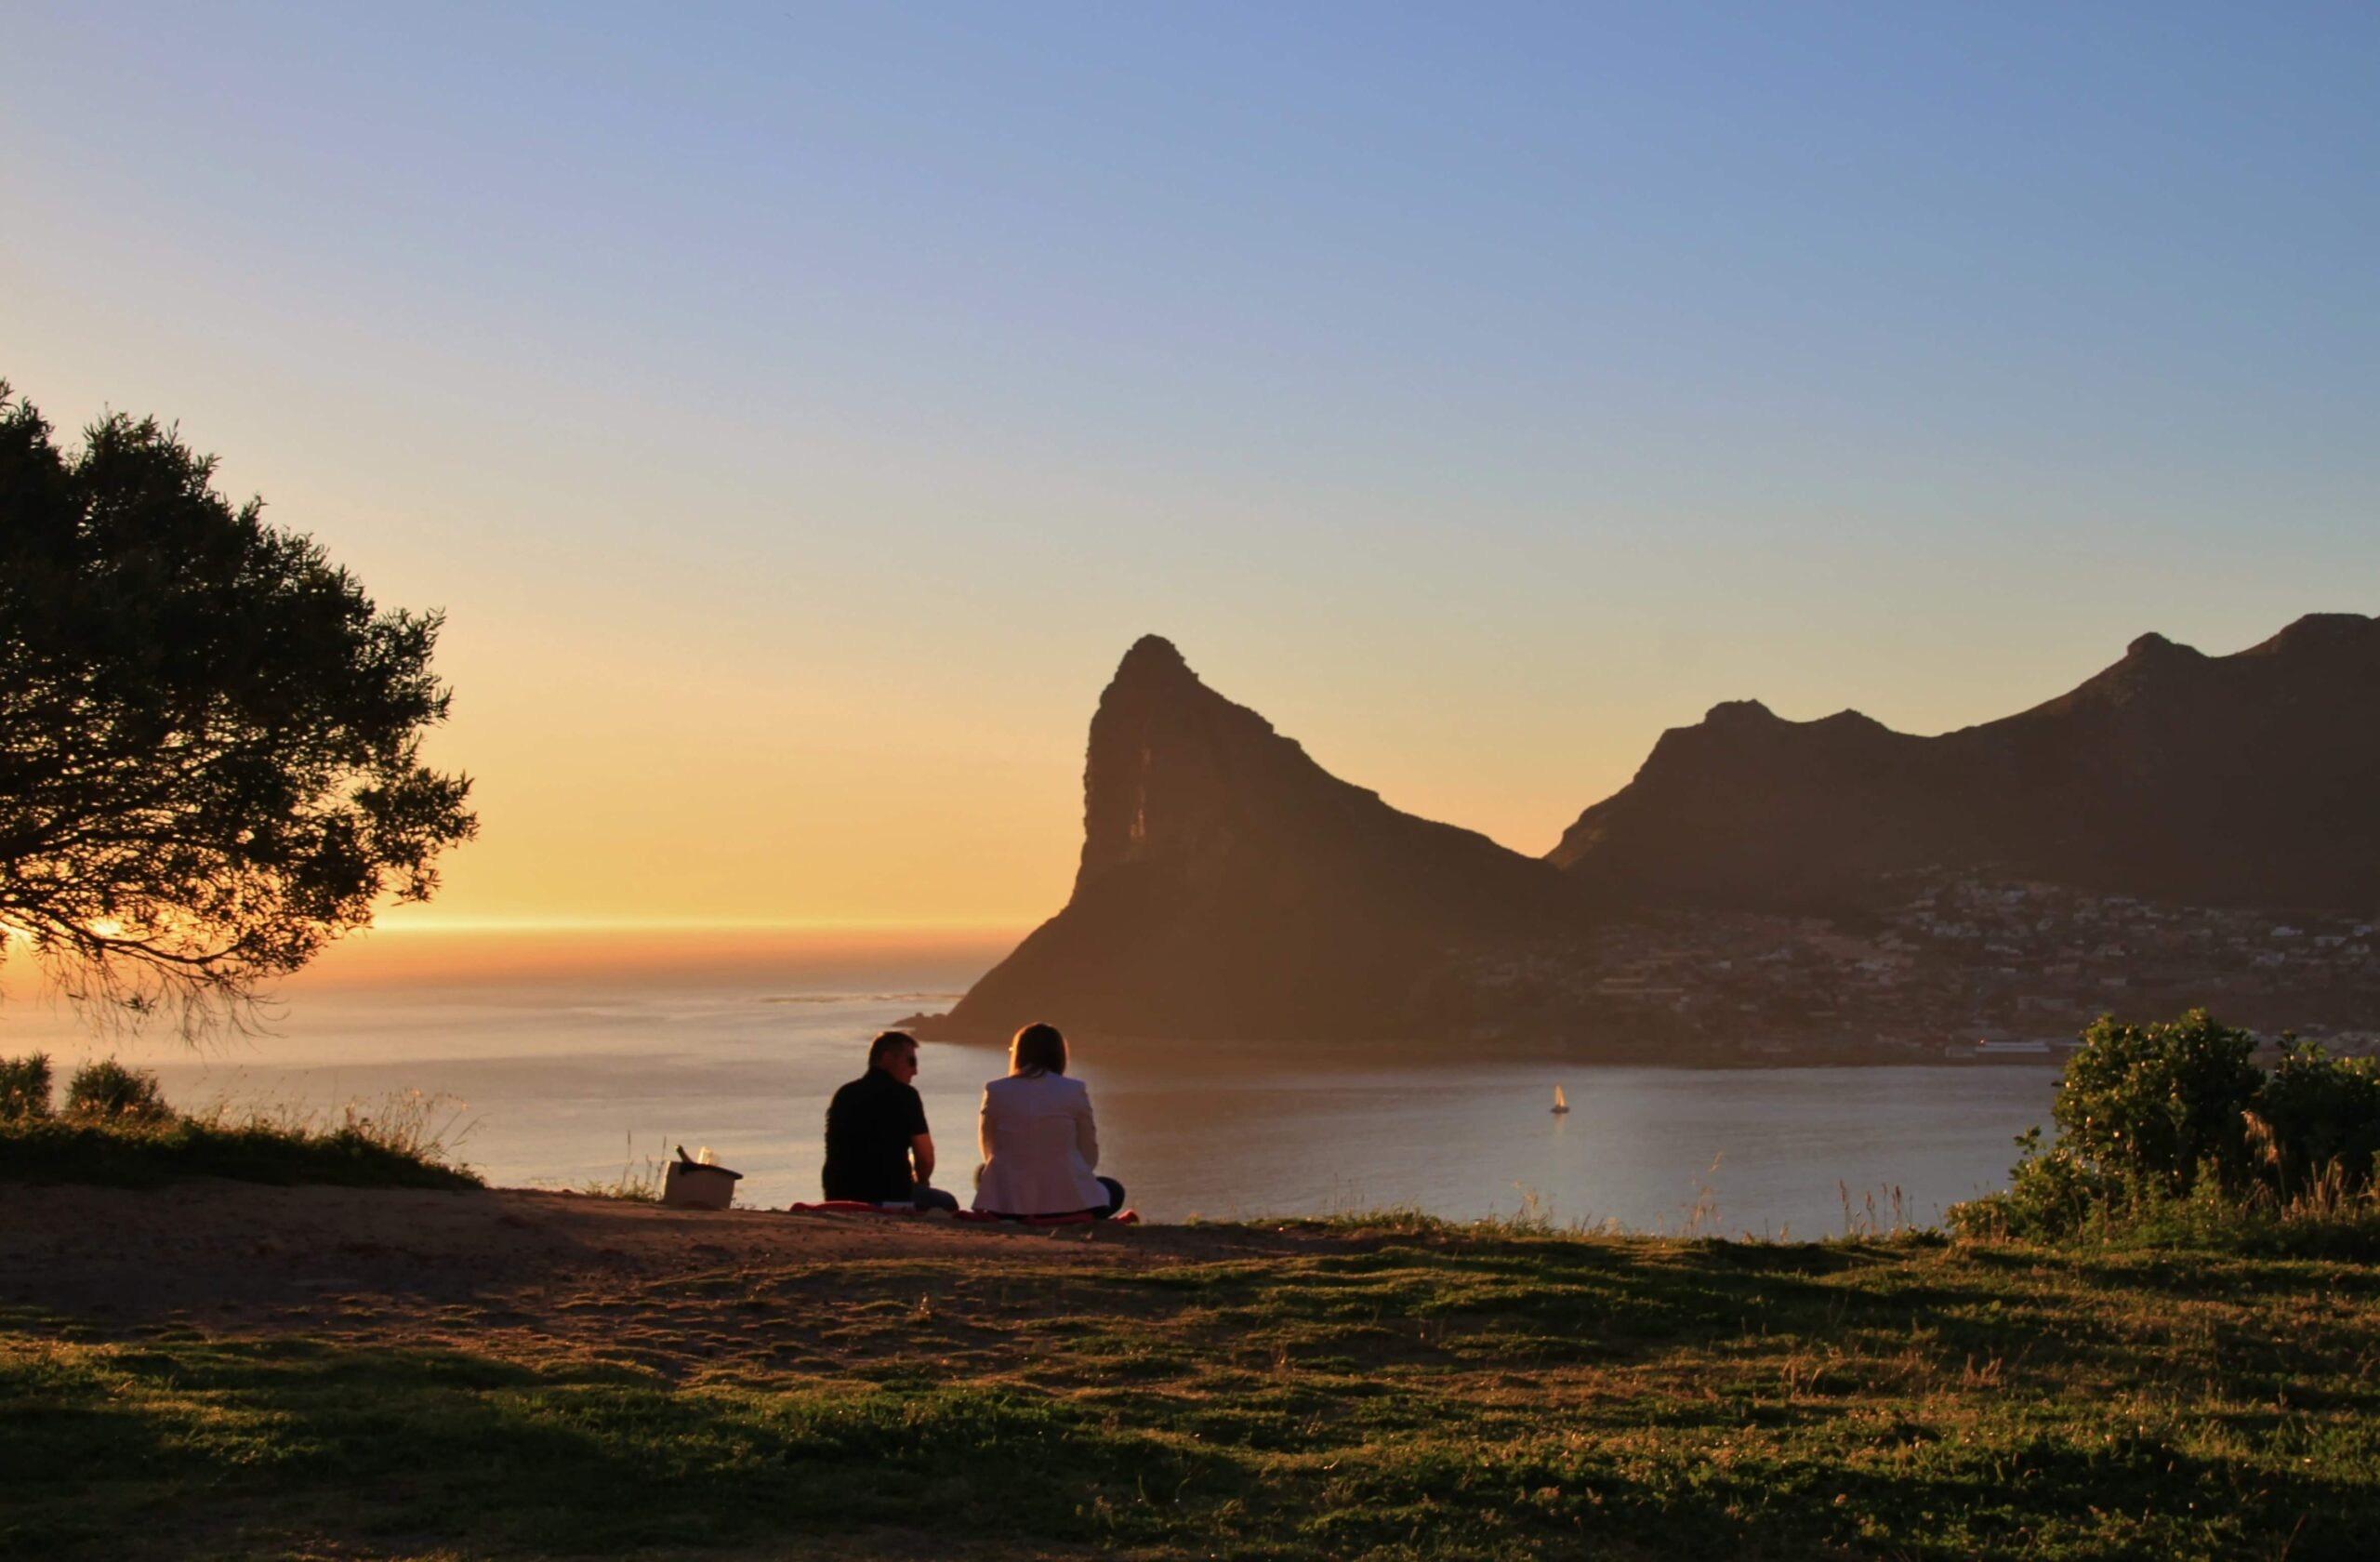 Sunset at Hout Bay in Cape Town, Western Cape